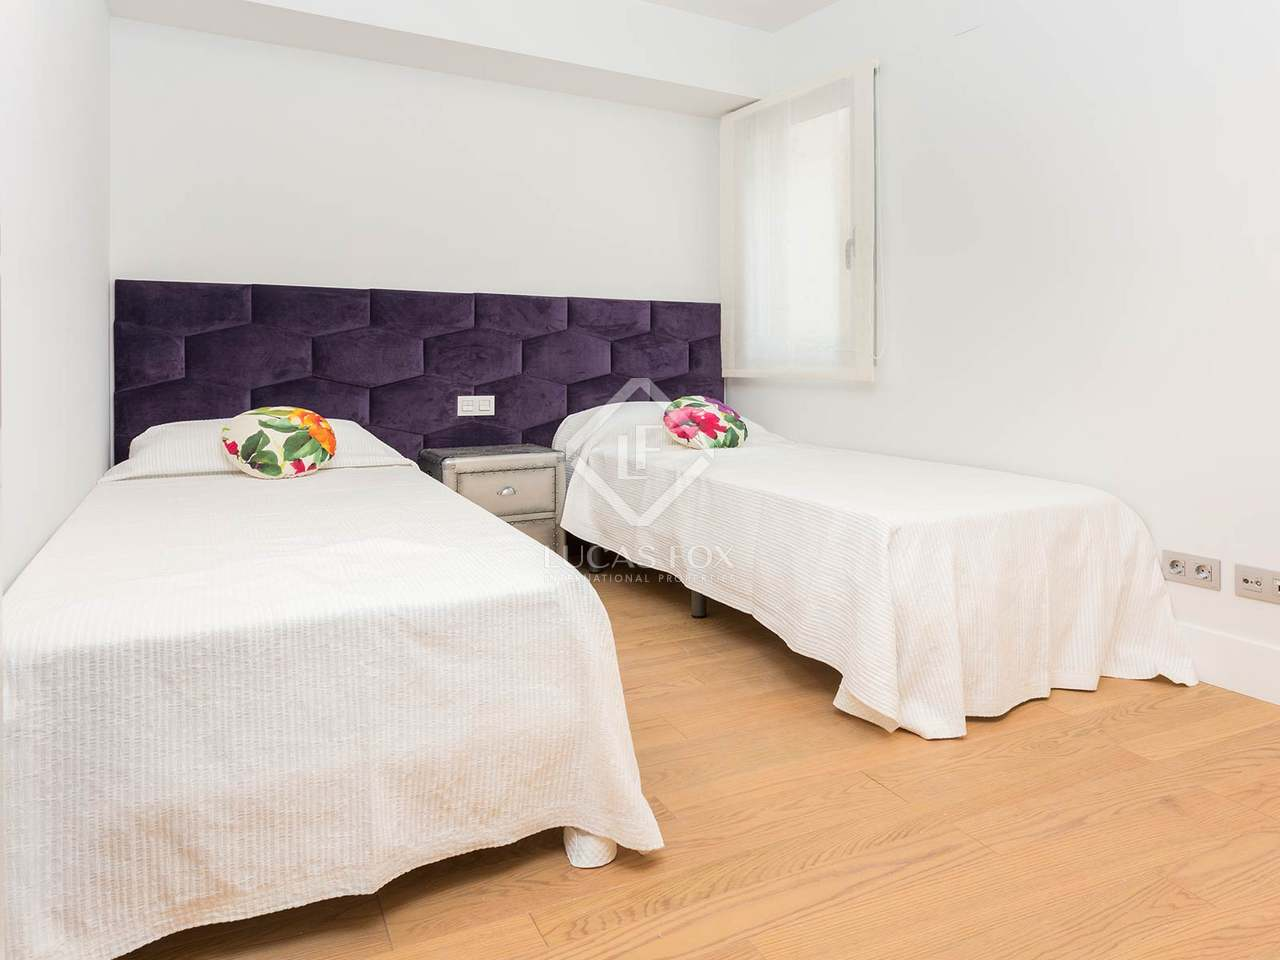 Renovated 3 Bedroom Apartment For Sale In Barcelona Old Town